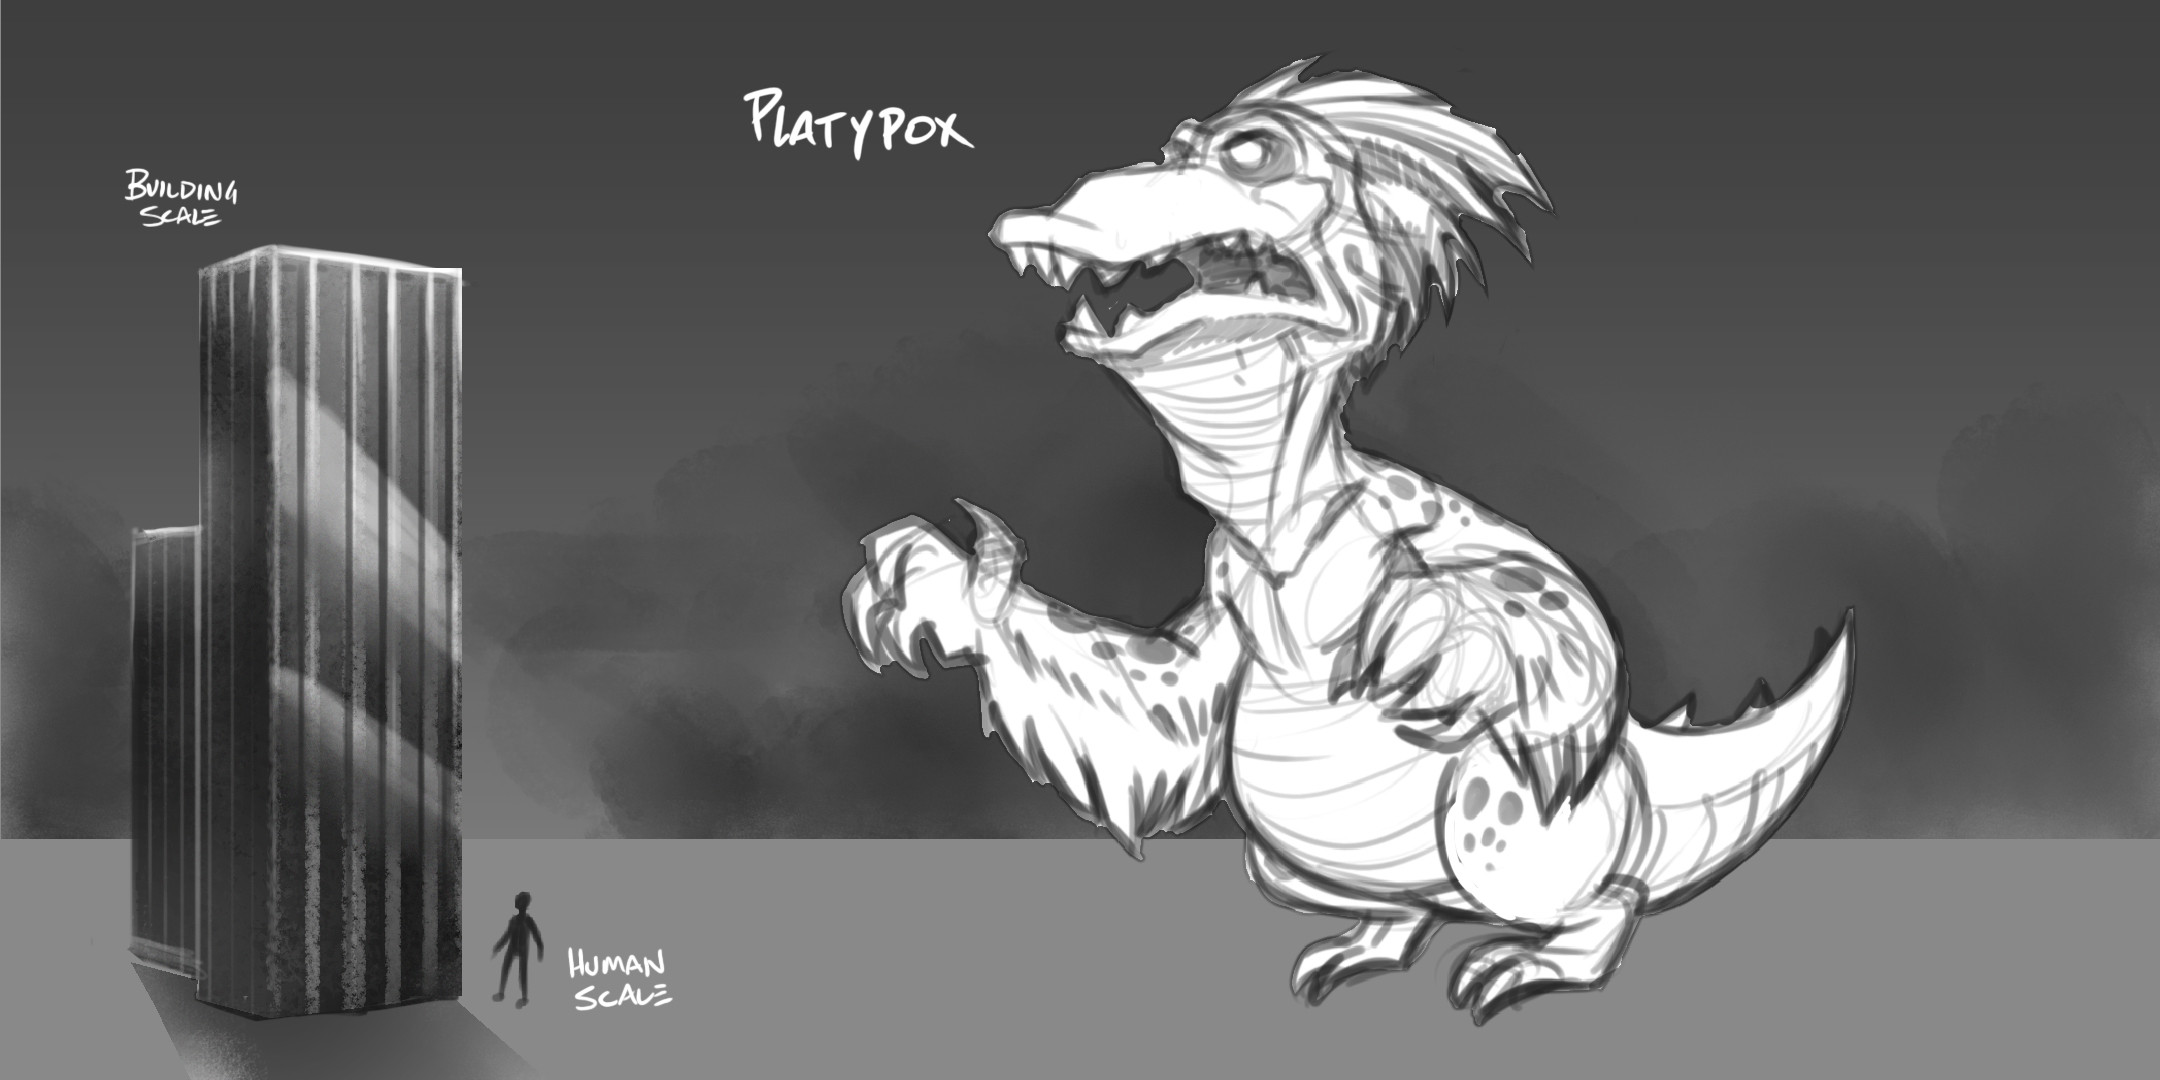 Concepts for the monster for the possibility of a 3rd person view for stream viewers